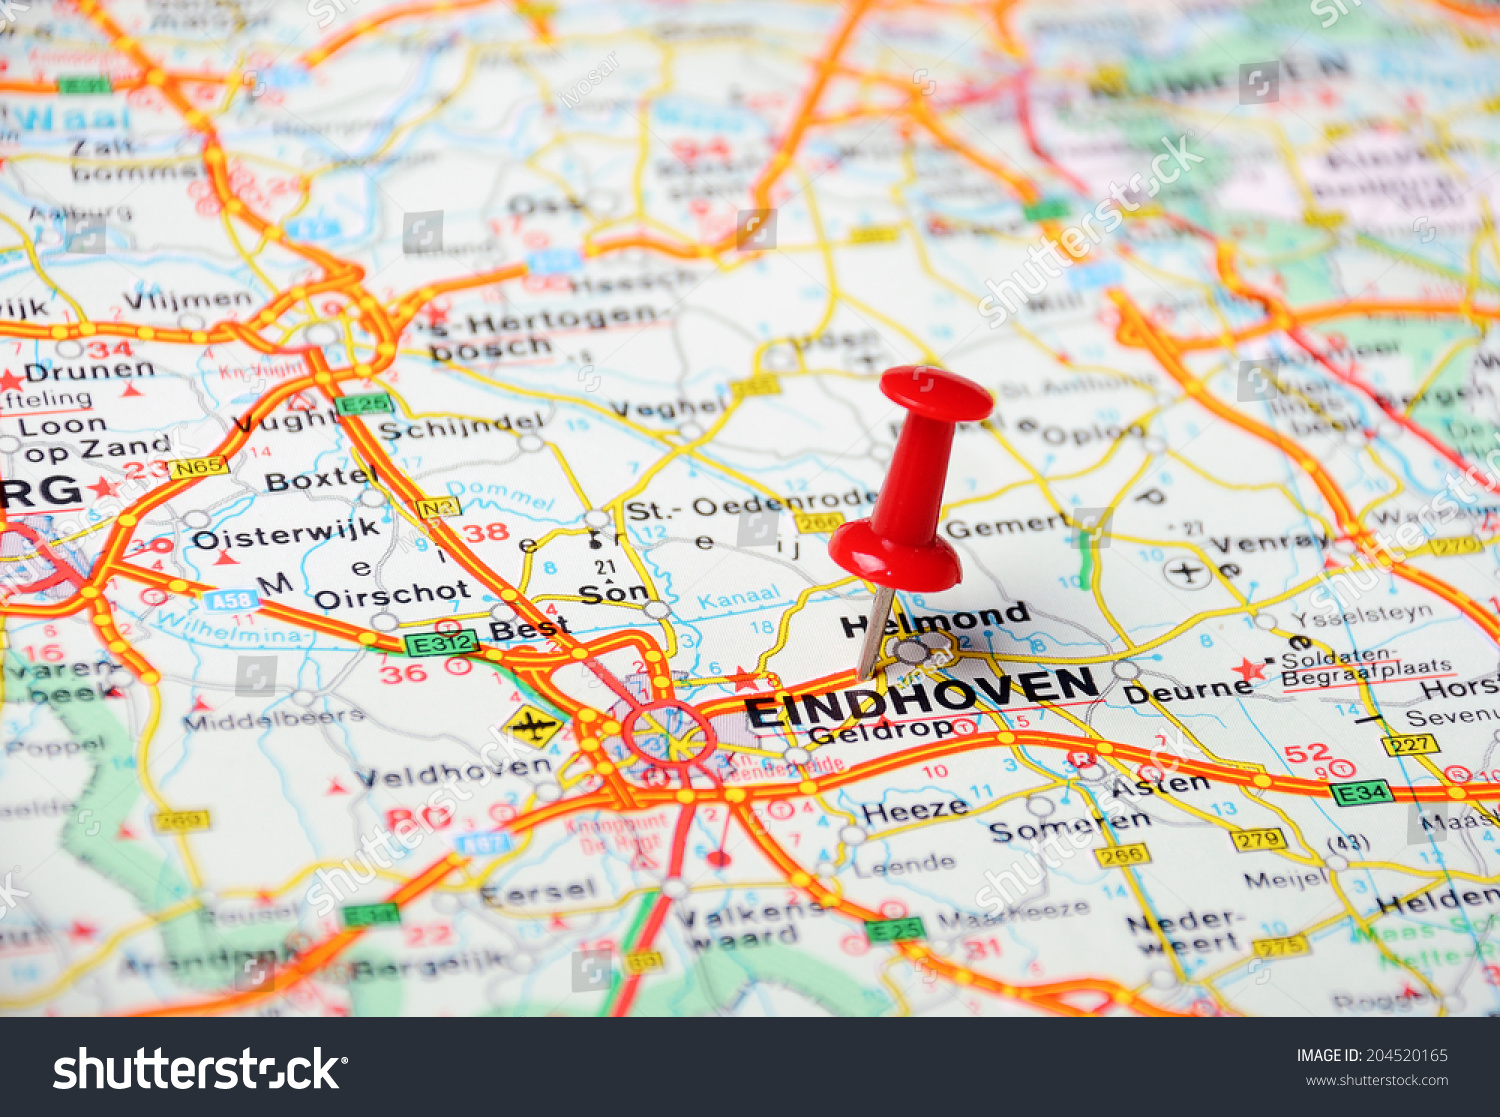 Netherlands Elevation Map%0A Netherlands Map Eindhoven Helmond Netherlands Map Netherlands Map Eindhoven  Close up of Eindhoven Netherlands map with